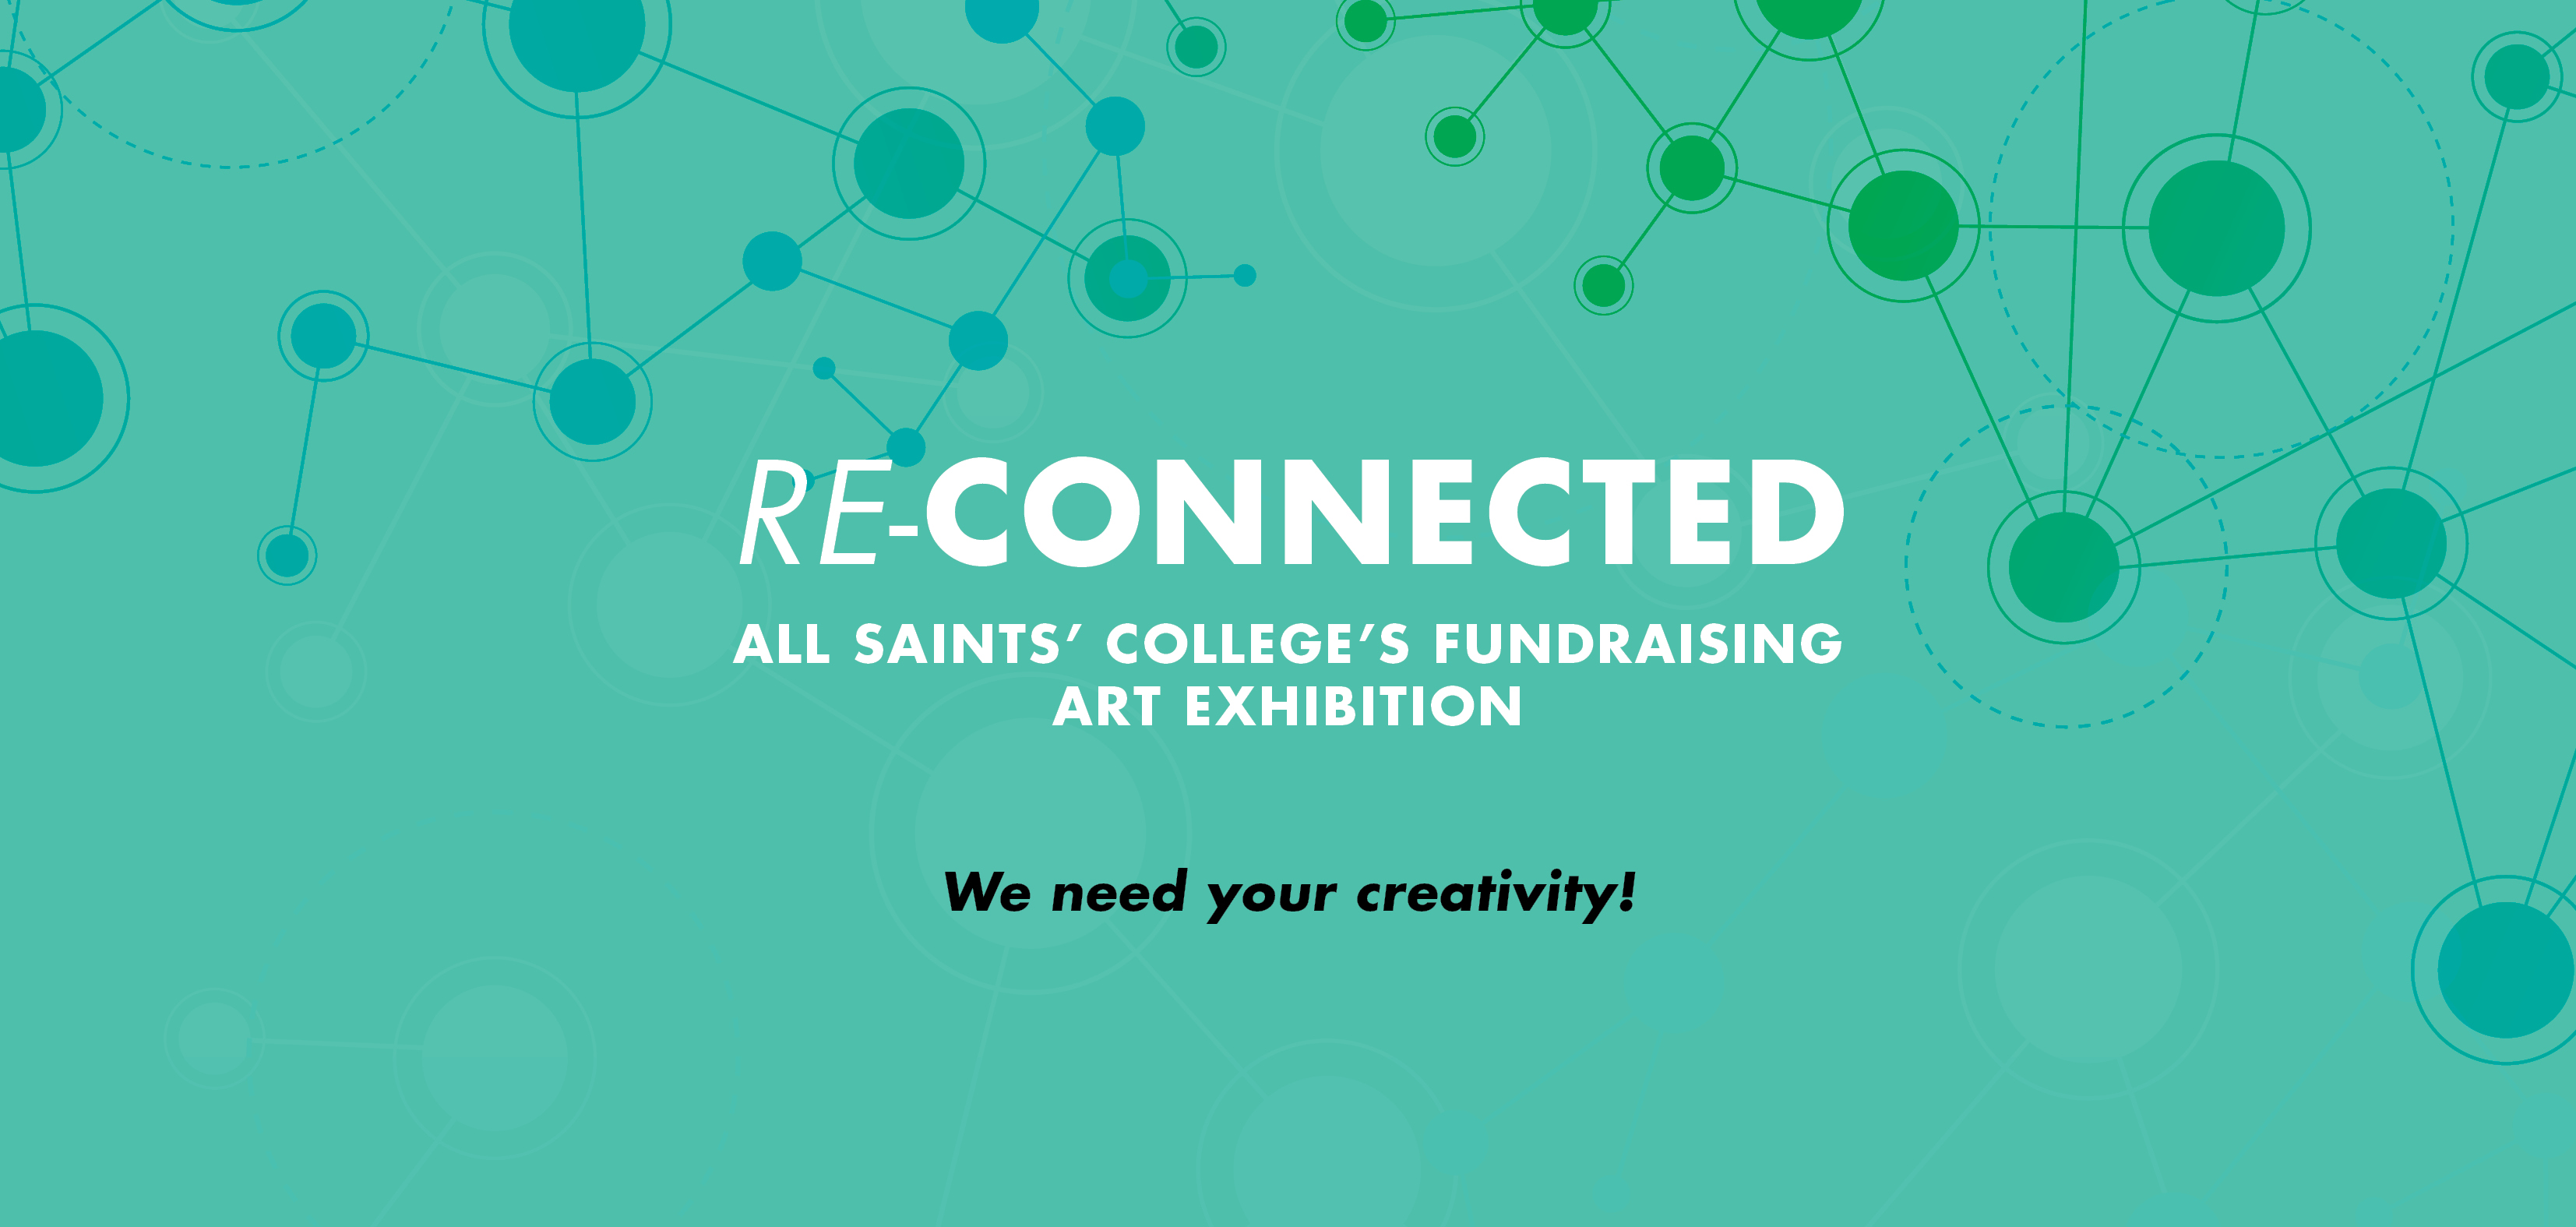 Re-connected All Saints' College Fundraising Art Exhibition